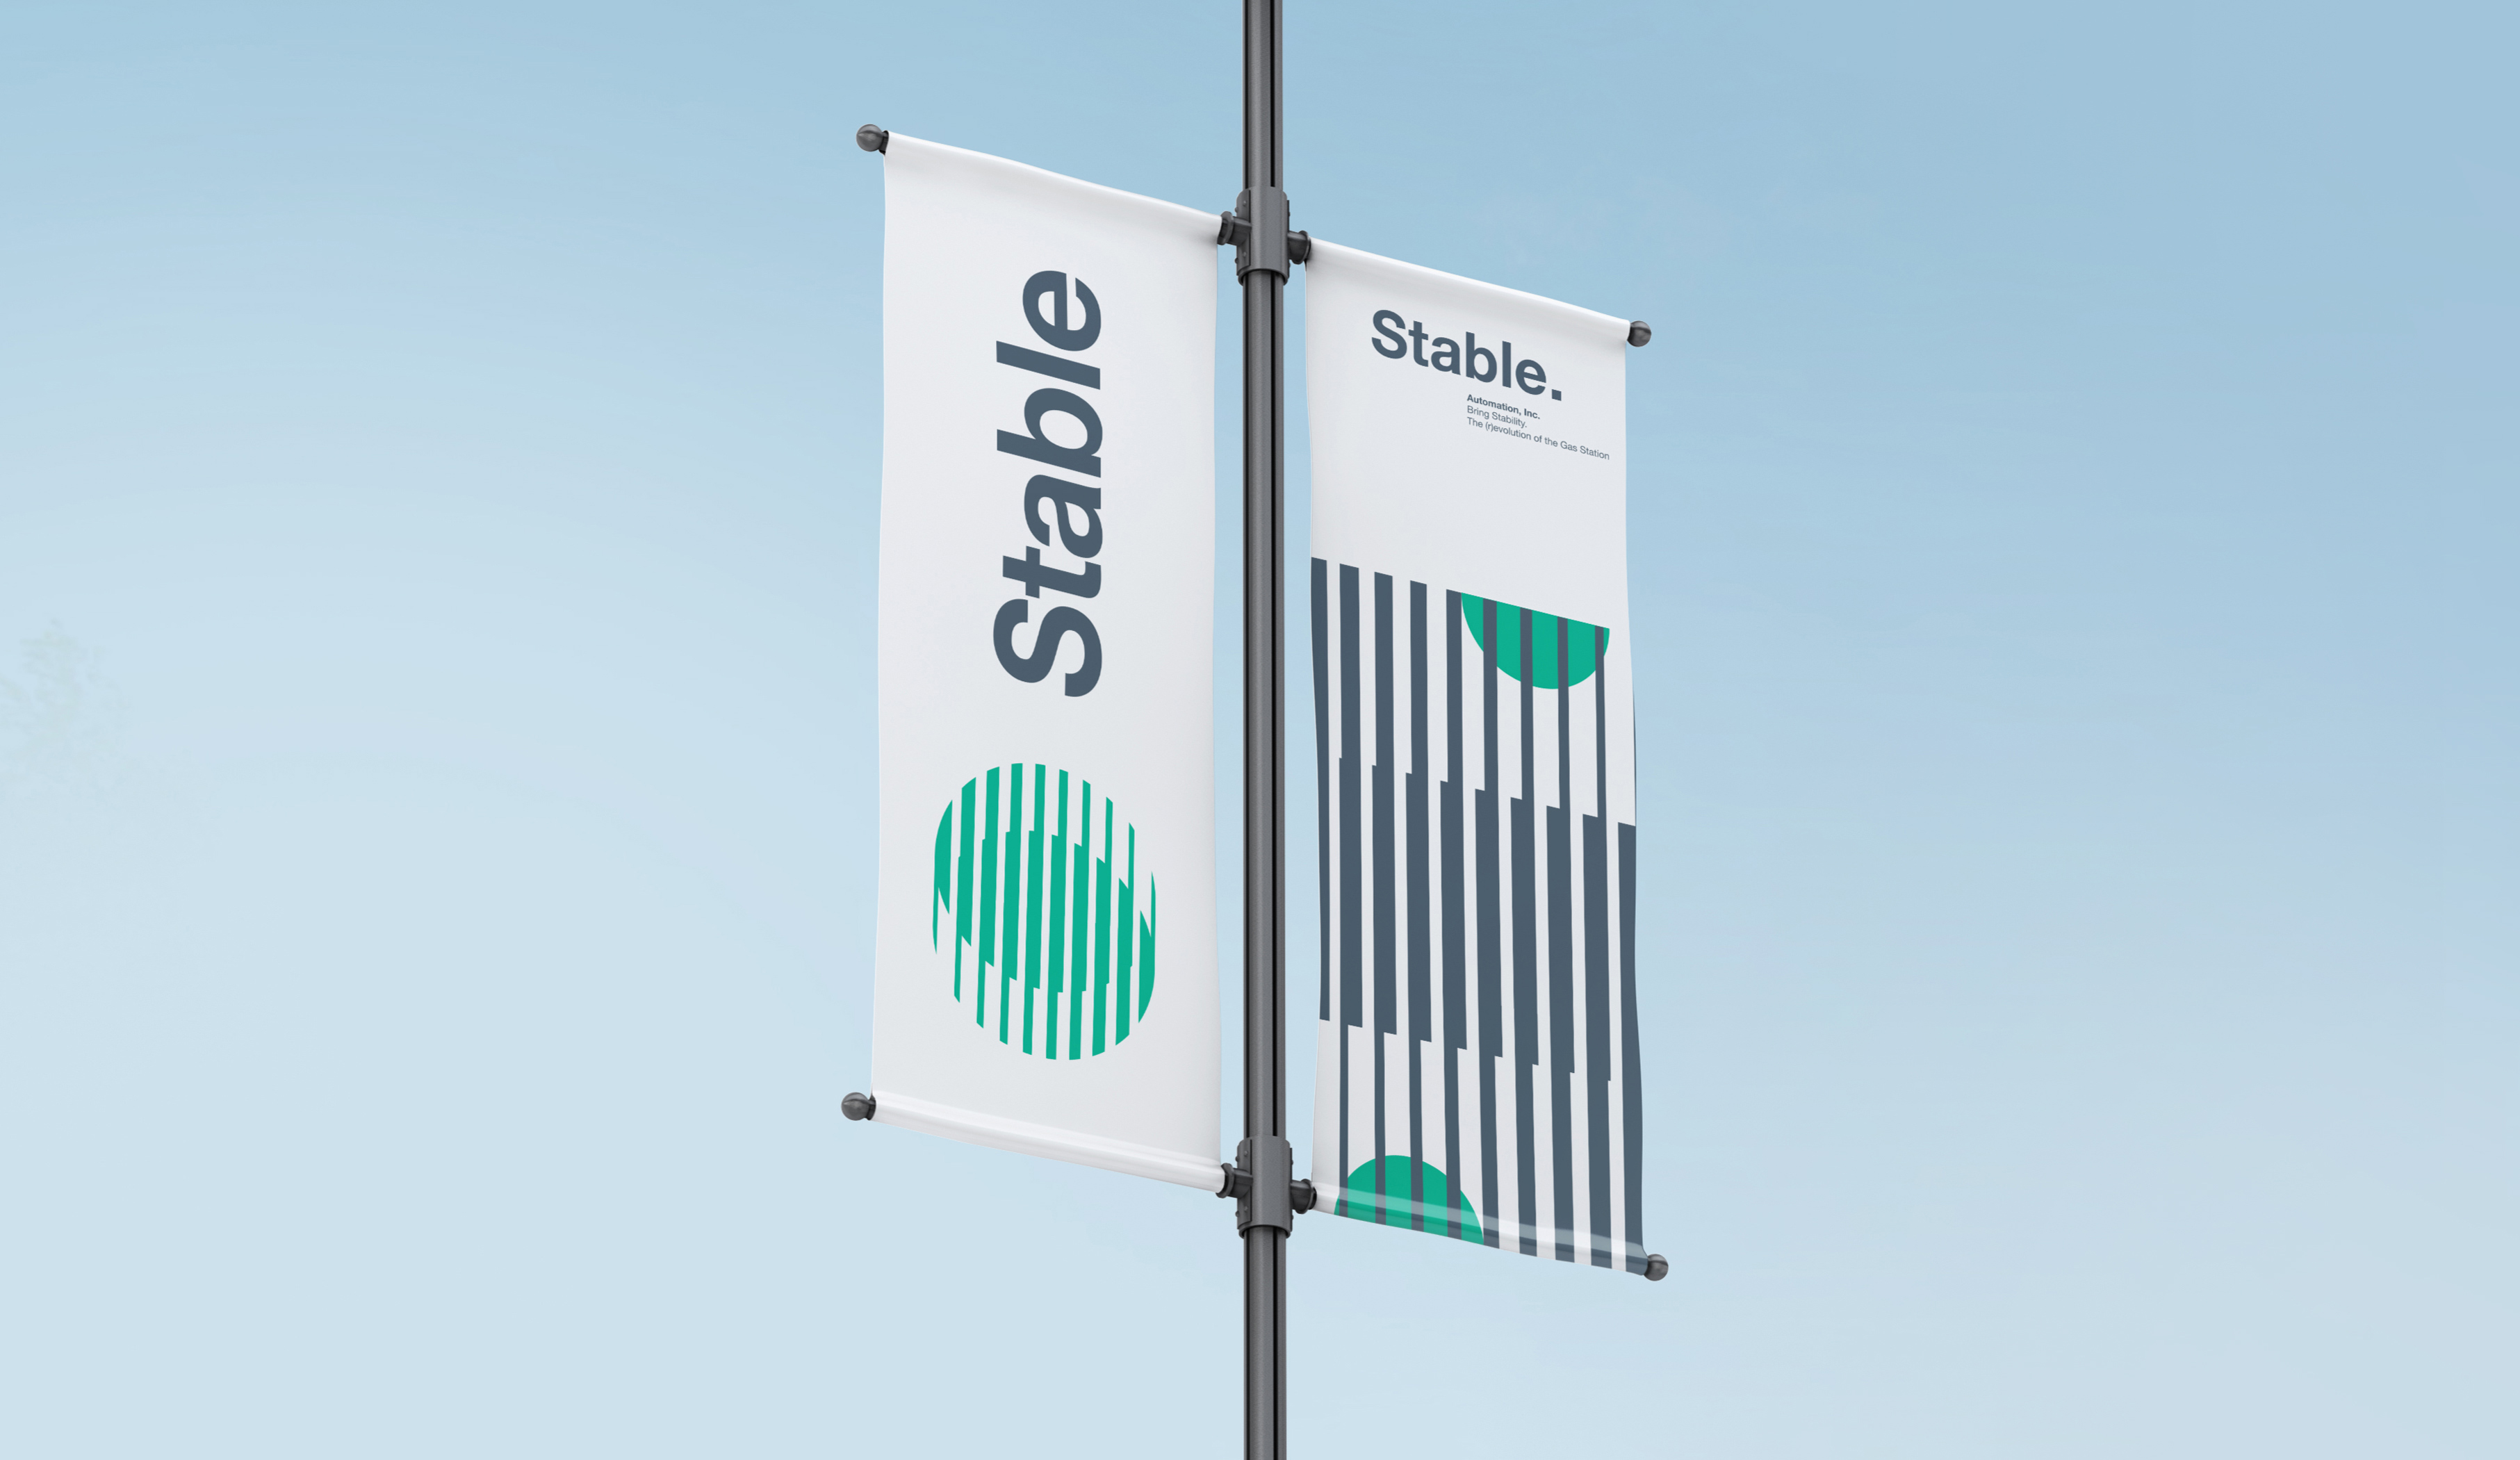 Stable vertical flag